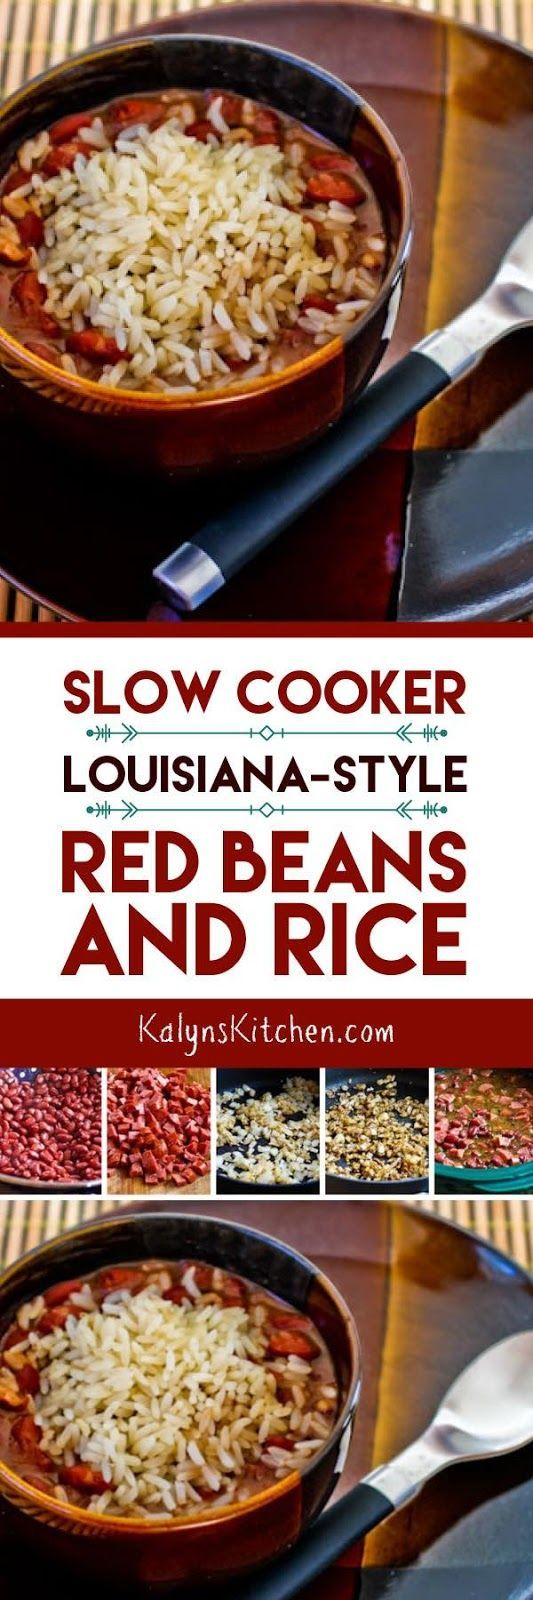 Slow Cooker  Louisiana-Style Red Beans and Rice found on KalynsKitchen.com